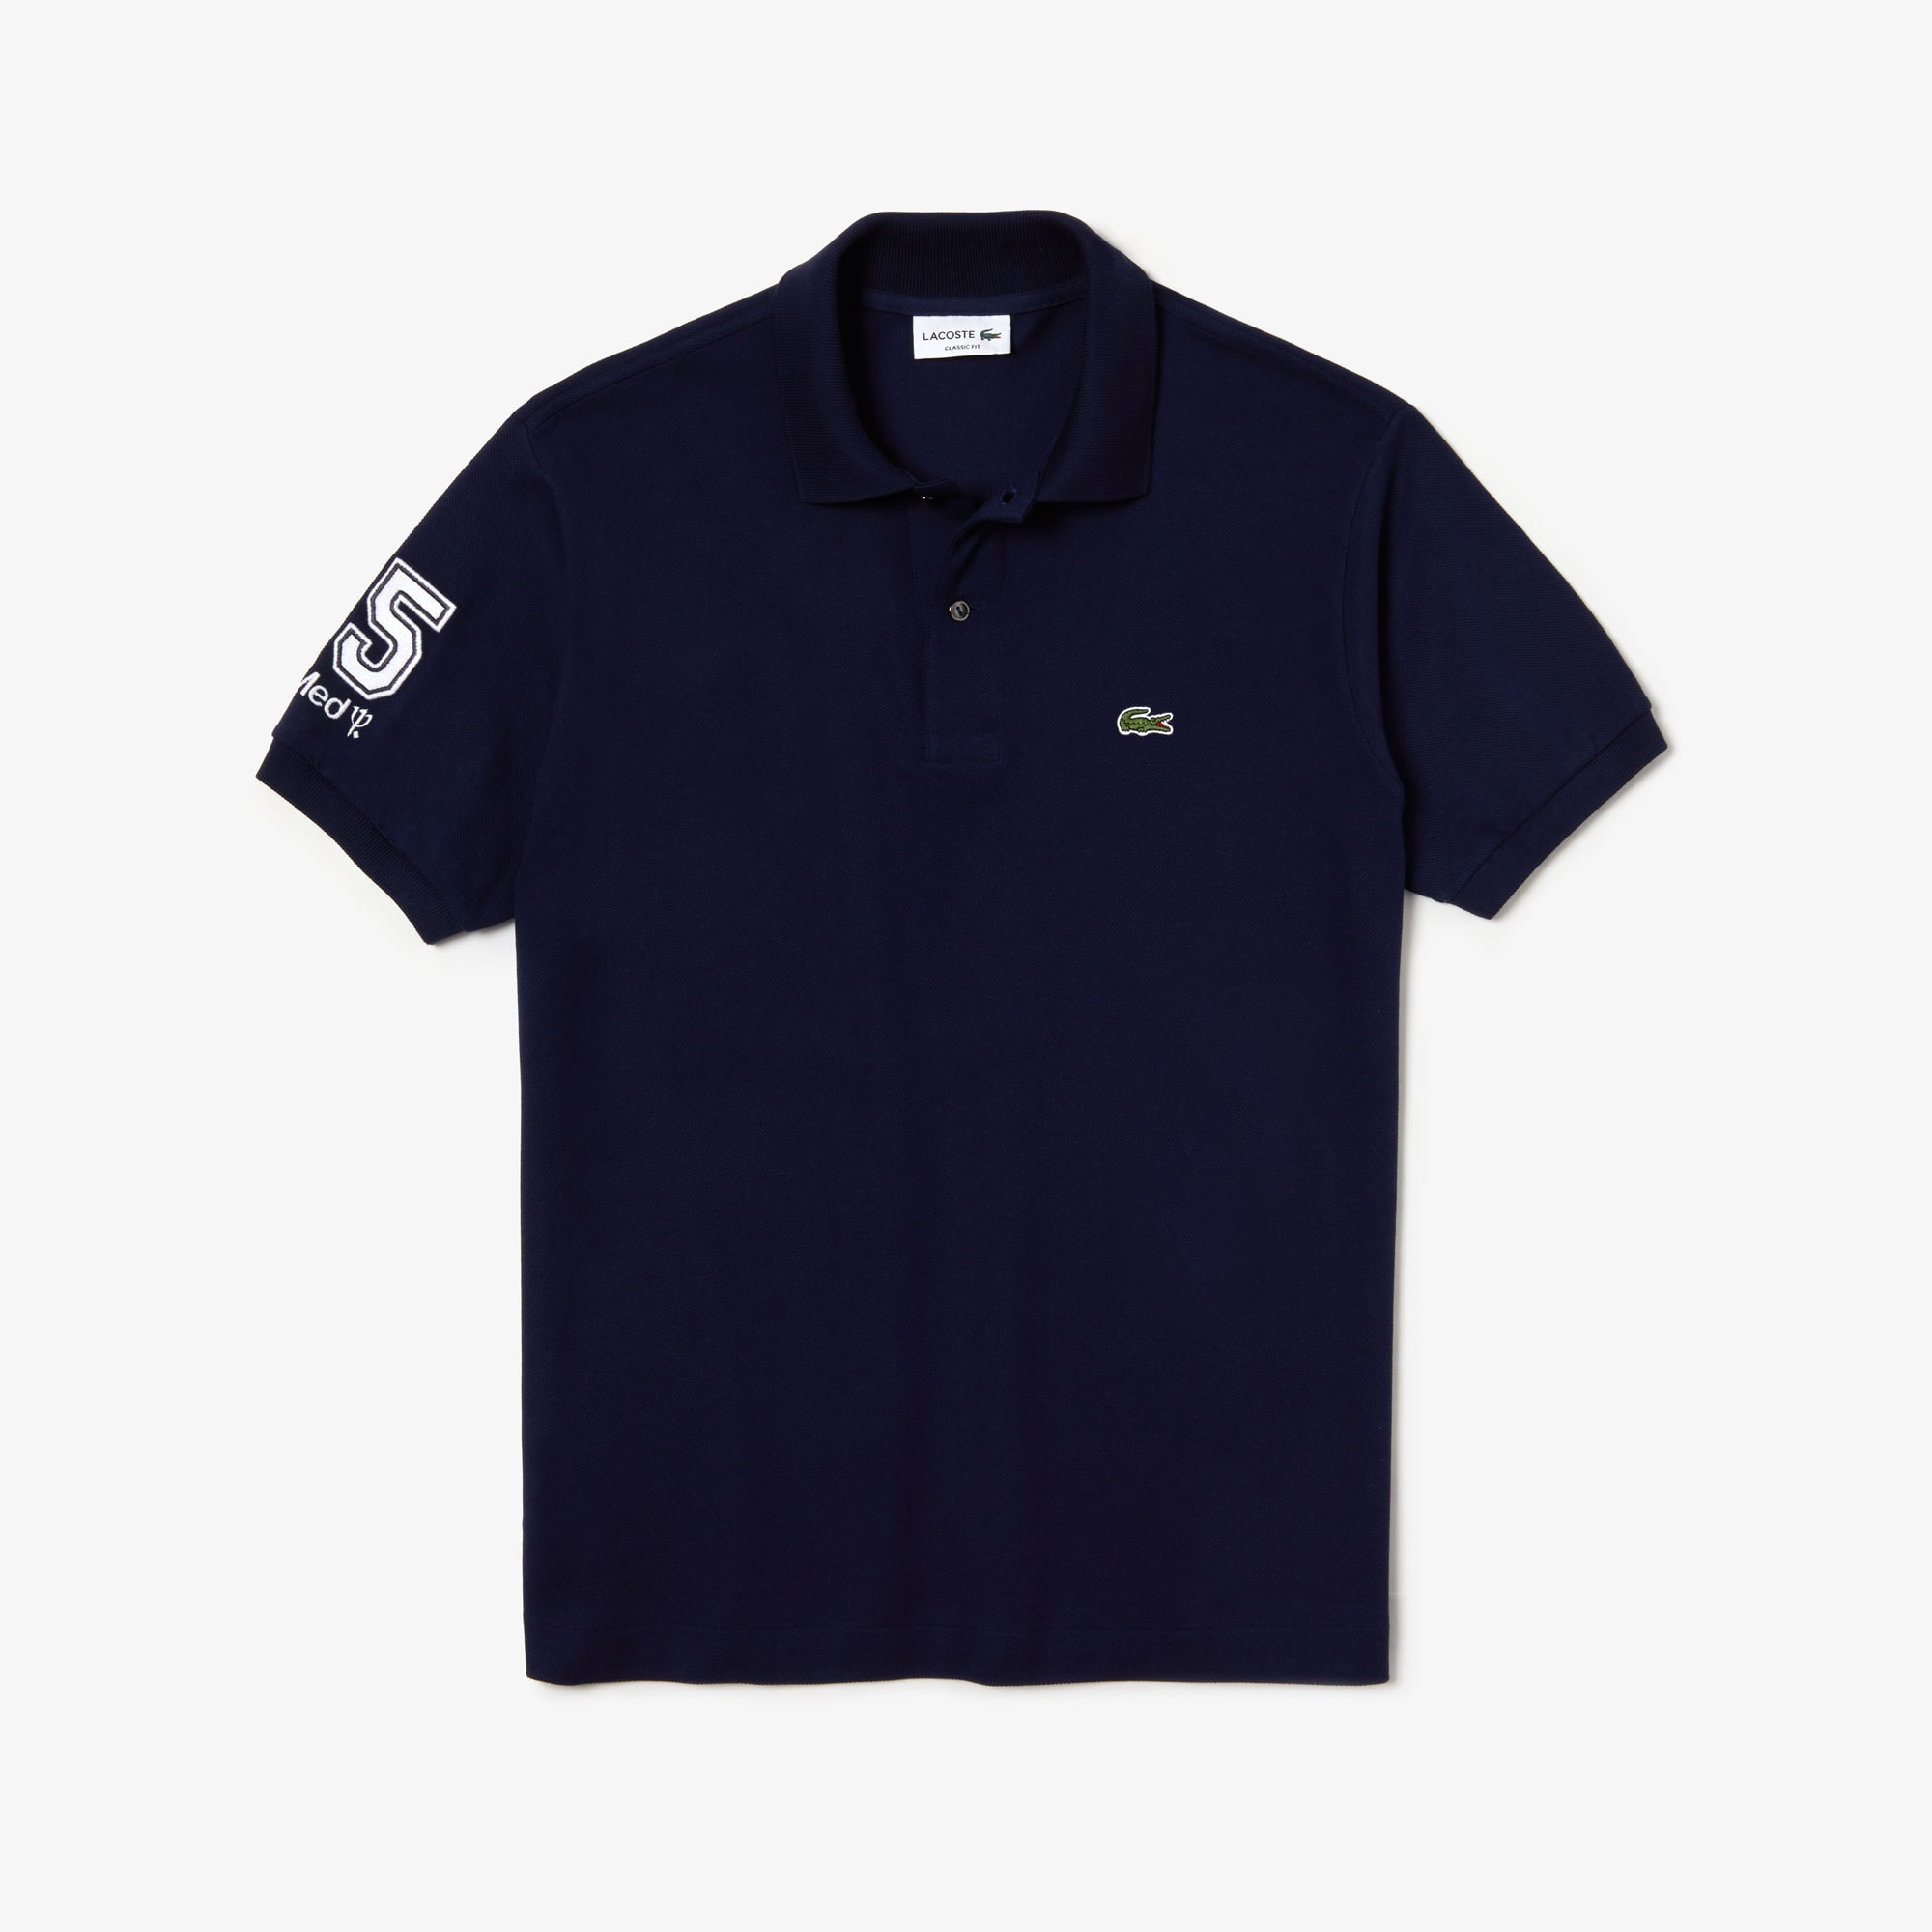 Polo Lacoste L.12.12 - Club Med in petit piqué